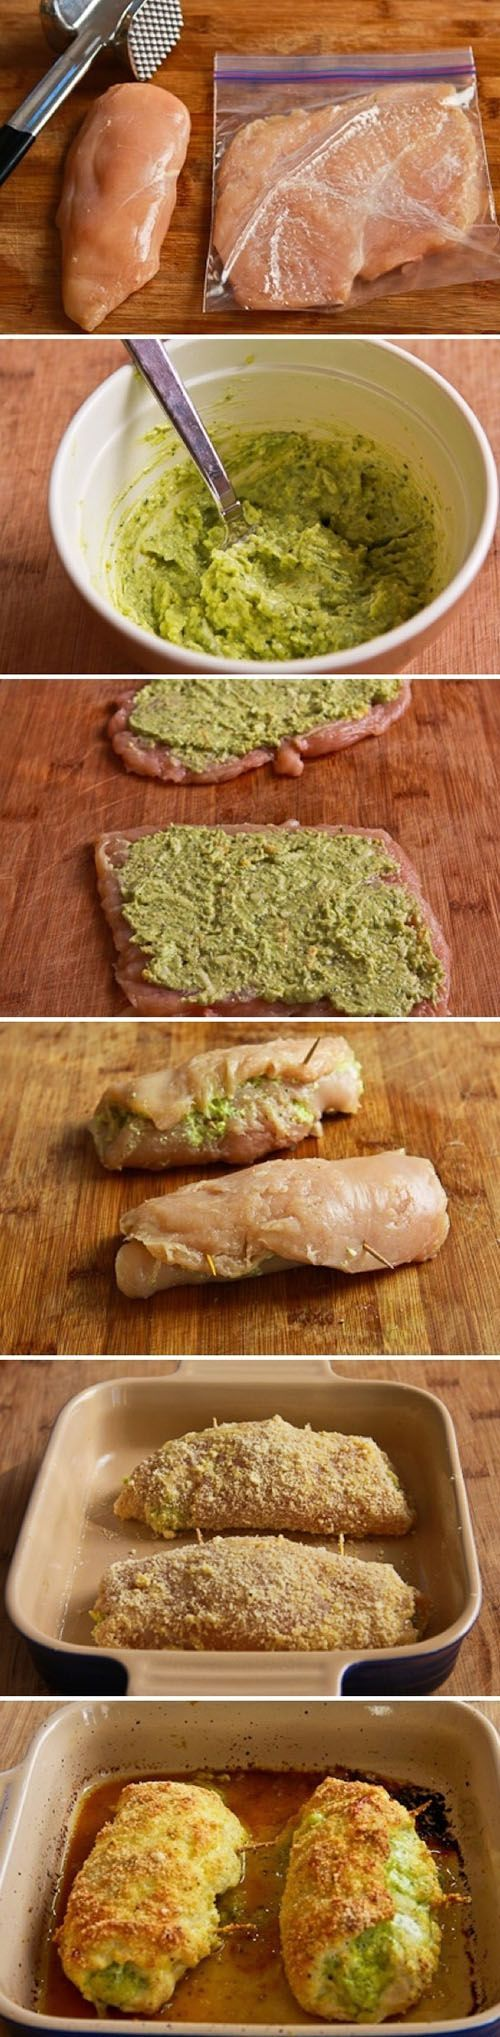 Chicken al pesto...without the bread coating!